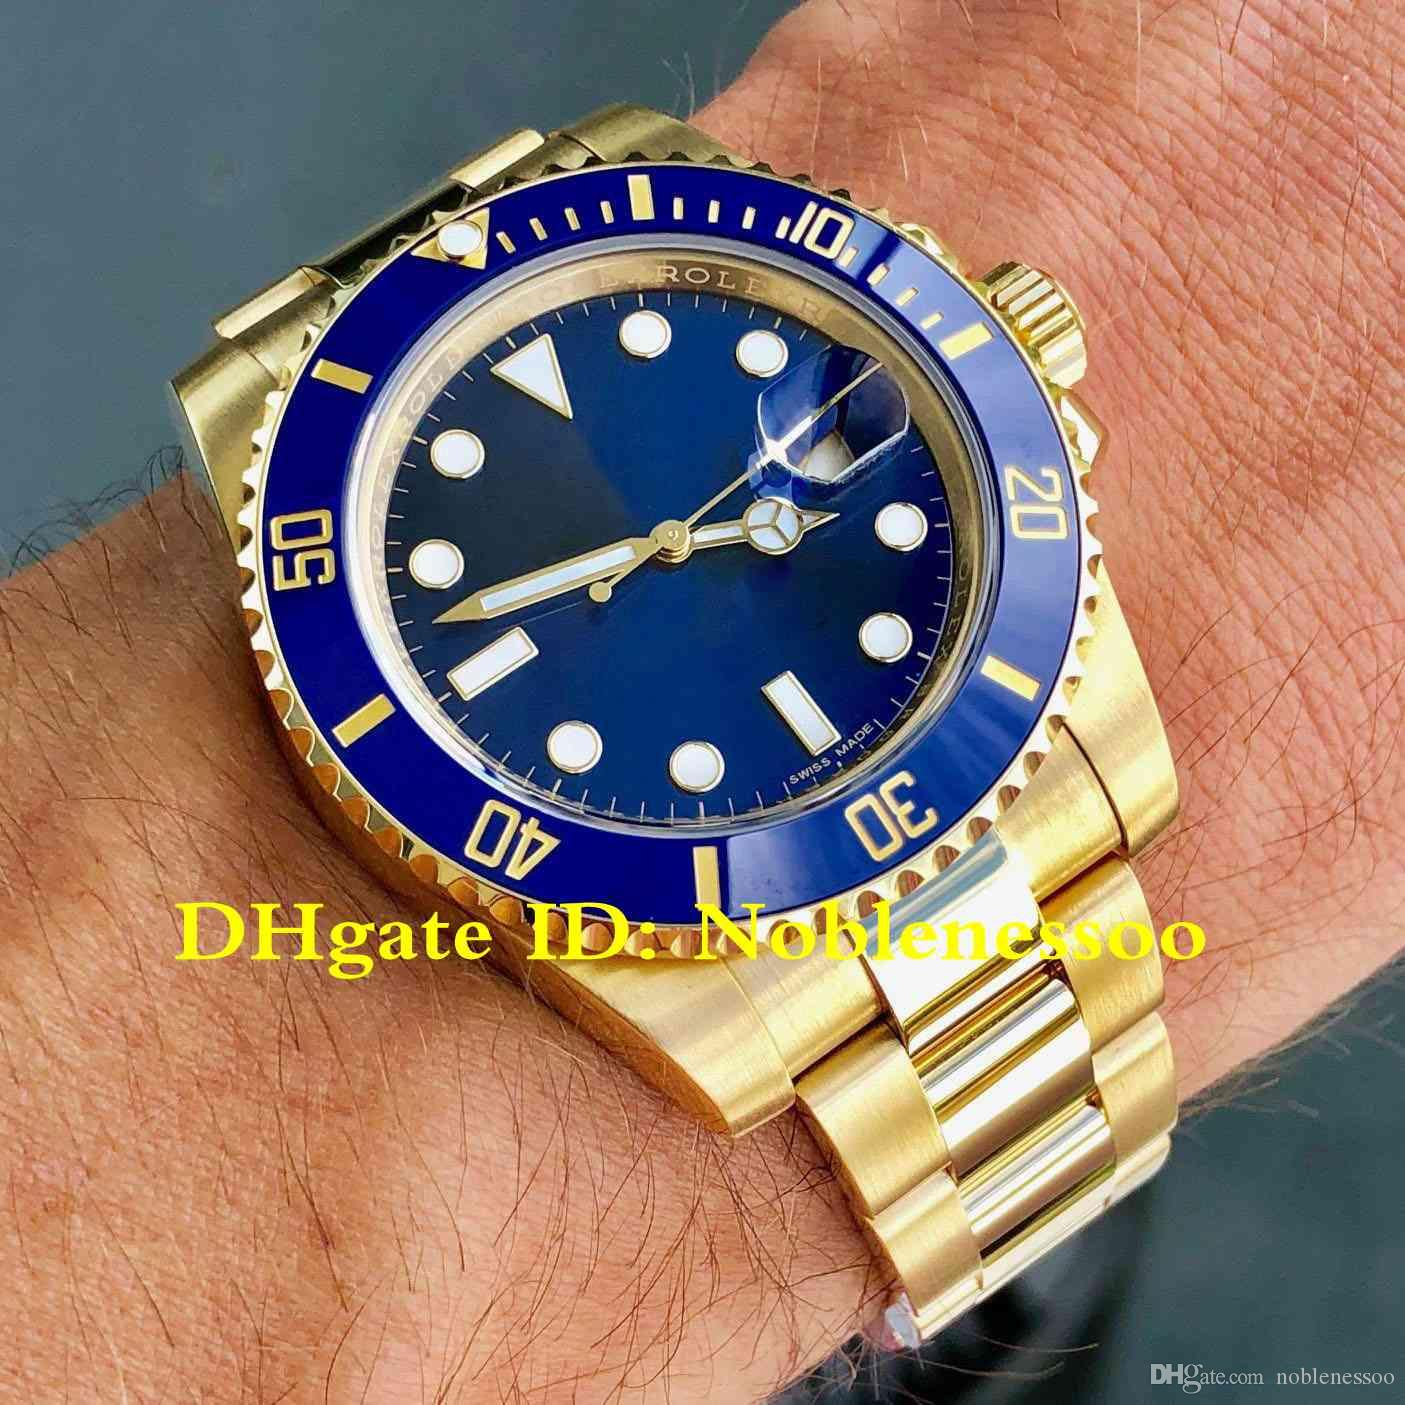 new product 75c97 652e6 5 Color Luxury Watch 40mm 116618LB Watch for Men Yellow Gold Blue Dial  116618 116613 116610LN Asia 2813 Movement Automatic Mens Watches